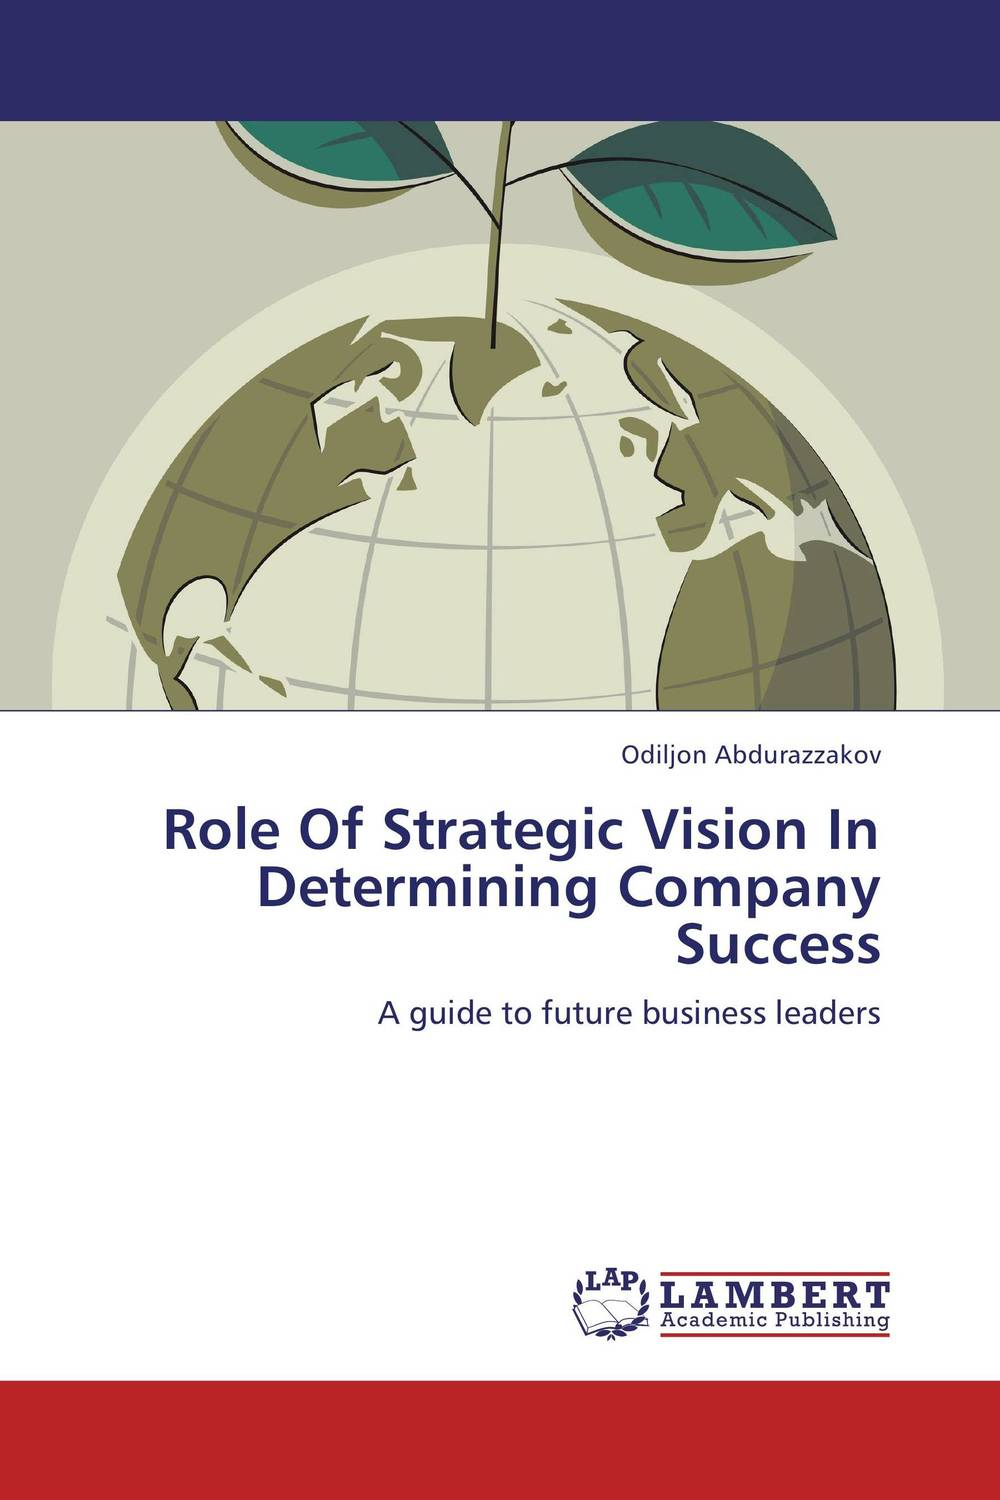 Role Of Strategic Vision In Determining Company Success jeffrey sampler l bringing strategy back how strategic shock absorbers make planning relevant in a world of constant change